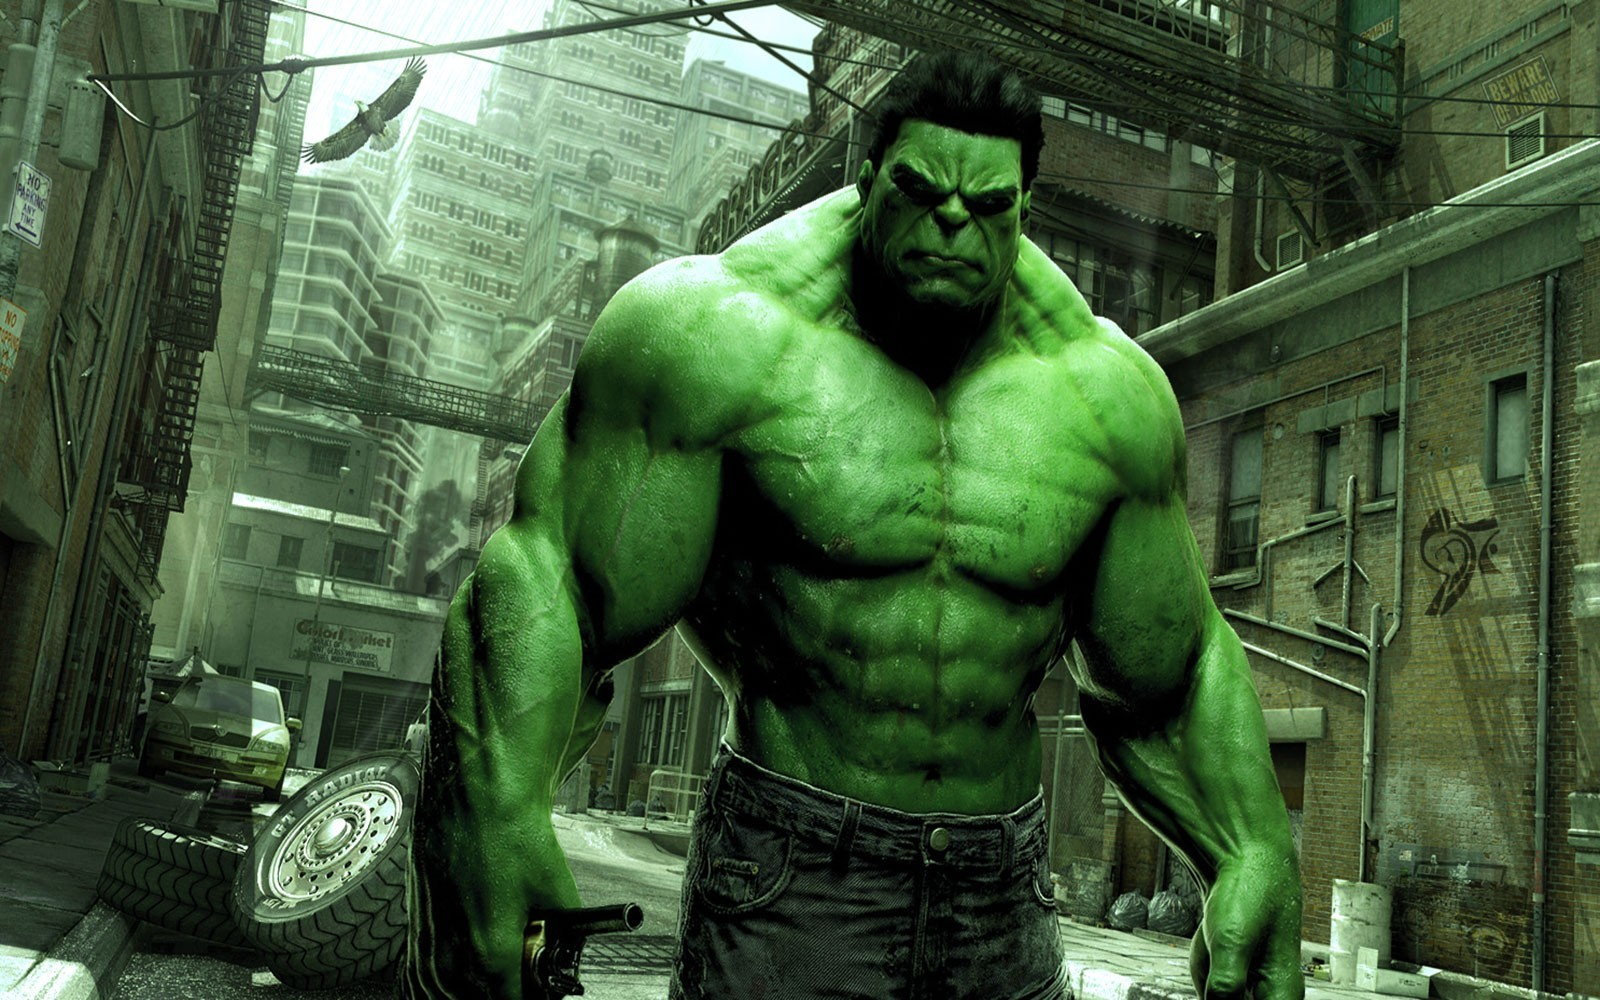 green marvel comics hulk